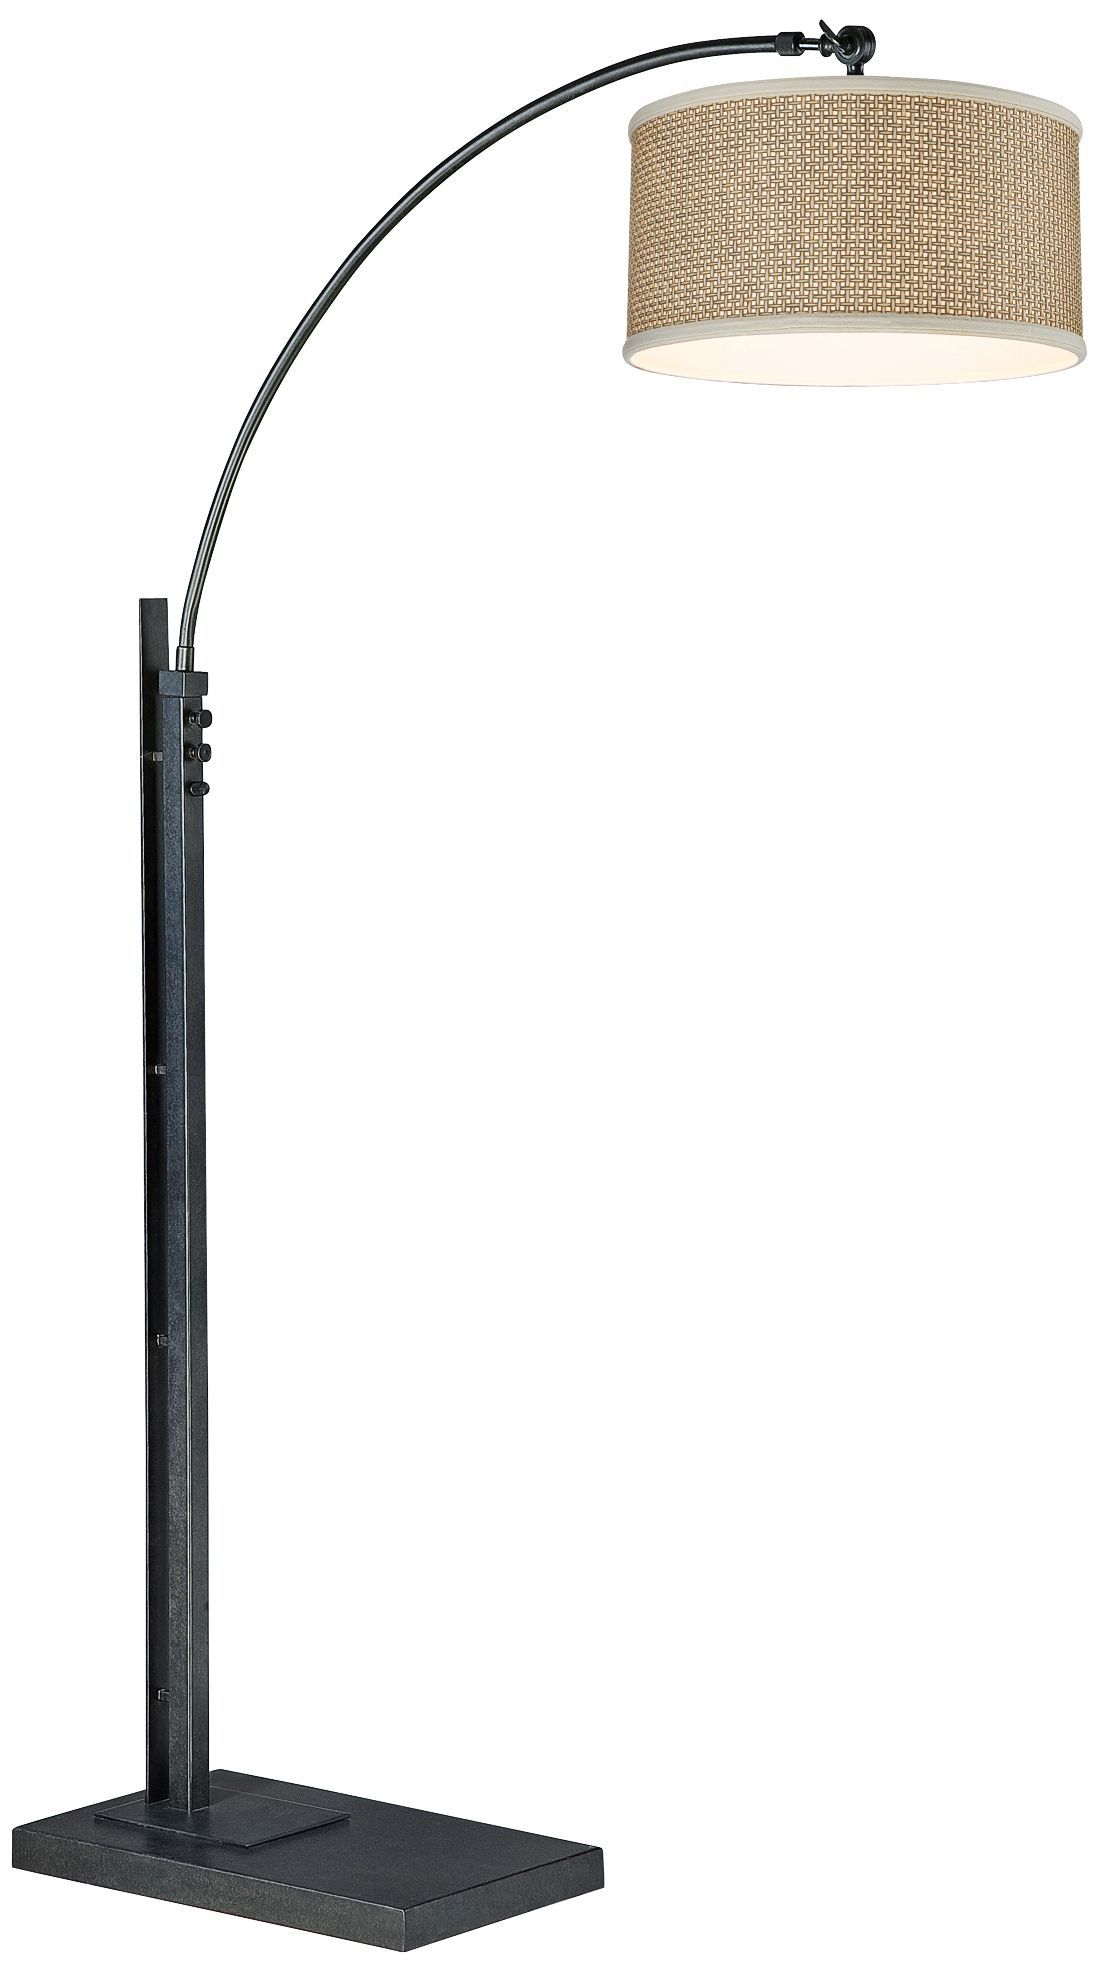 Zen Rattan Shade 76 Inch H Arc Quoizel Floor Lamp   EuroStyleLighting.com